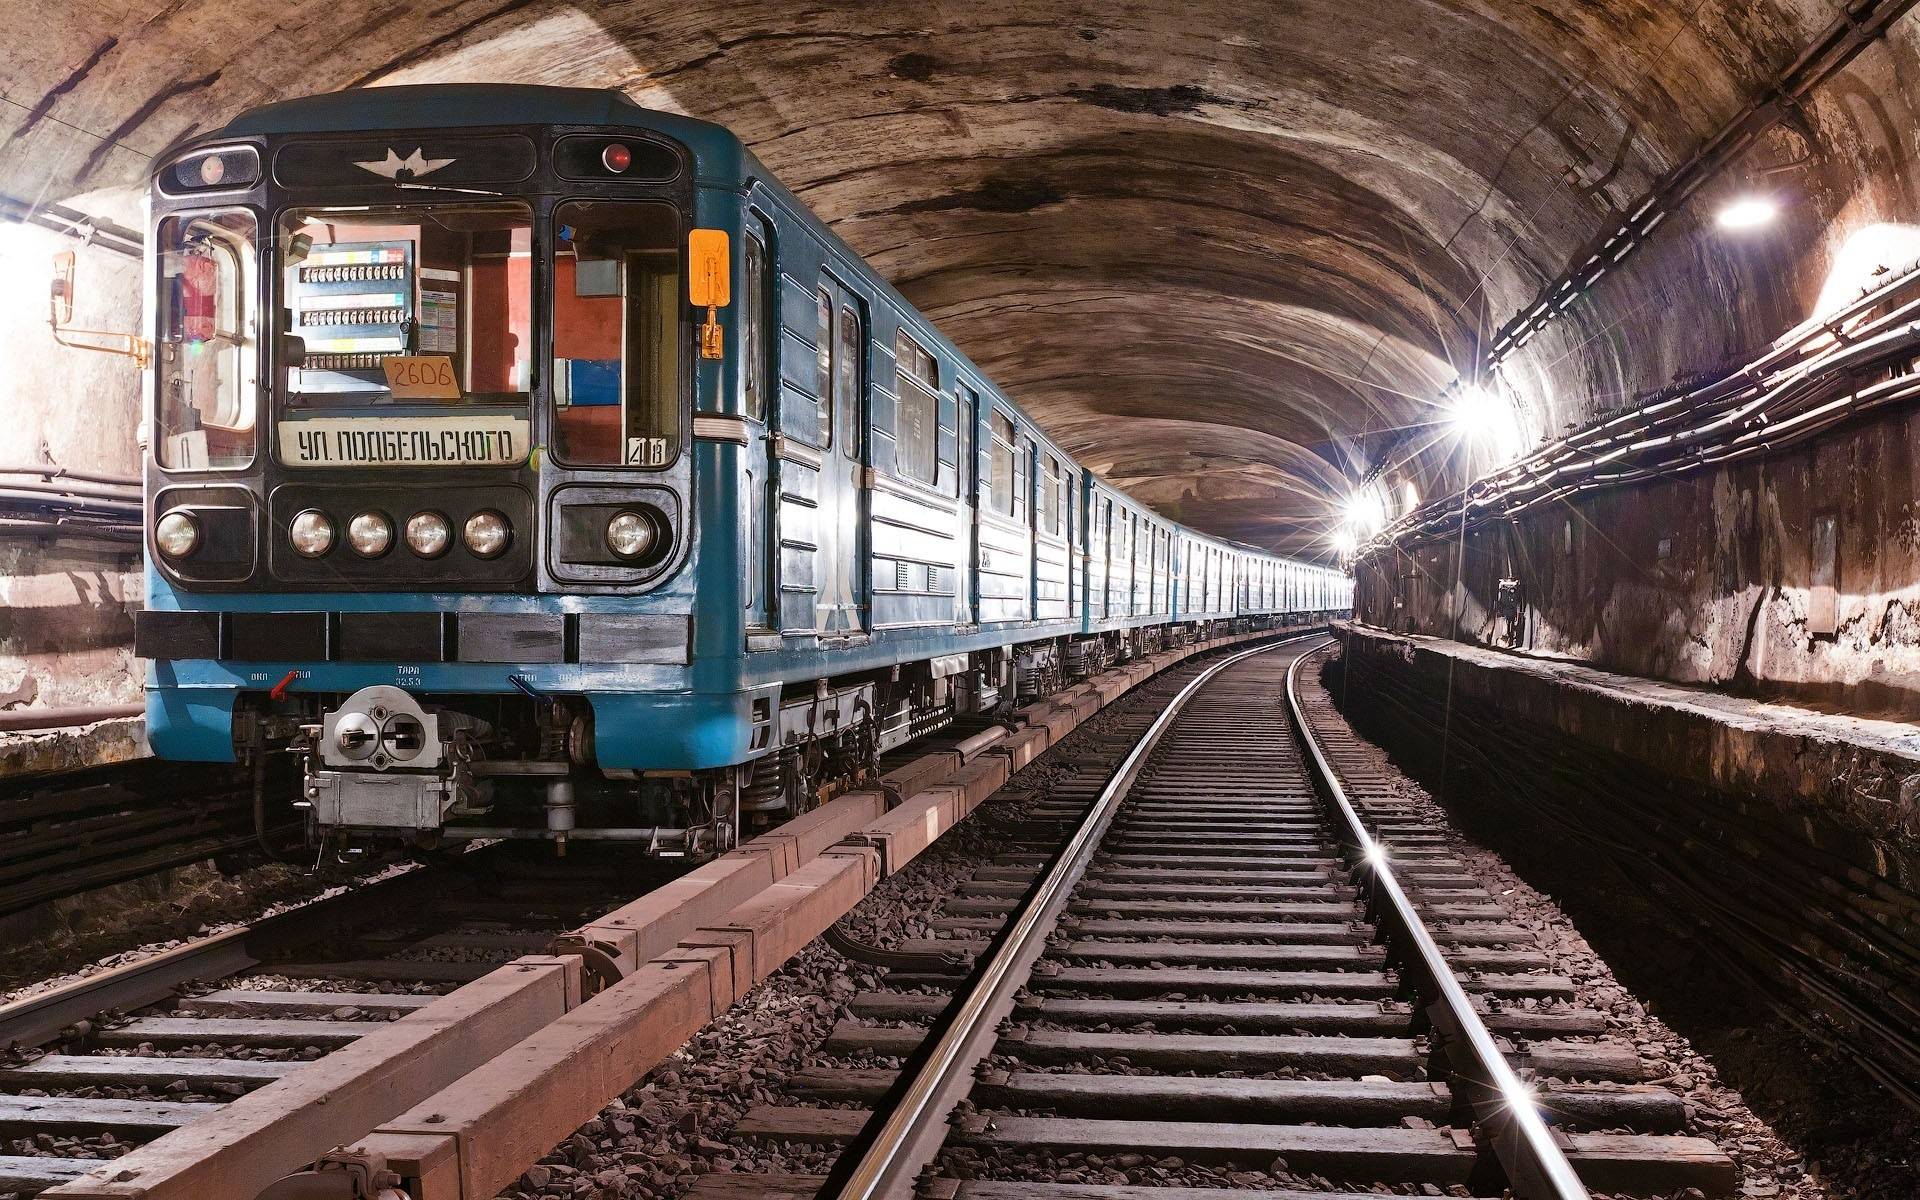 Metro_train_81-717.5M-714.5M_2606_in_tun